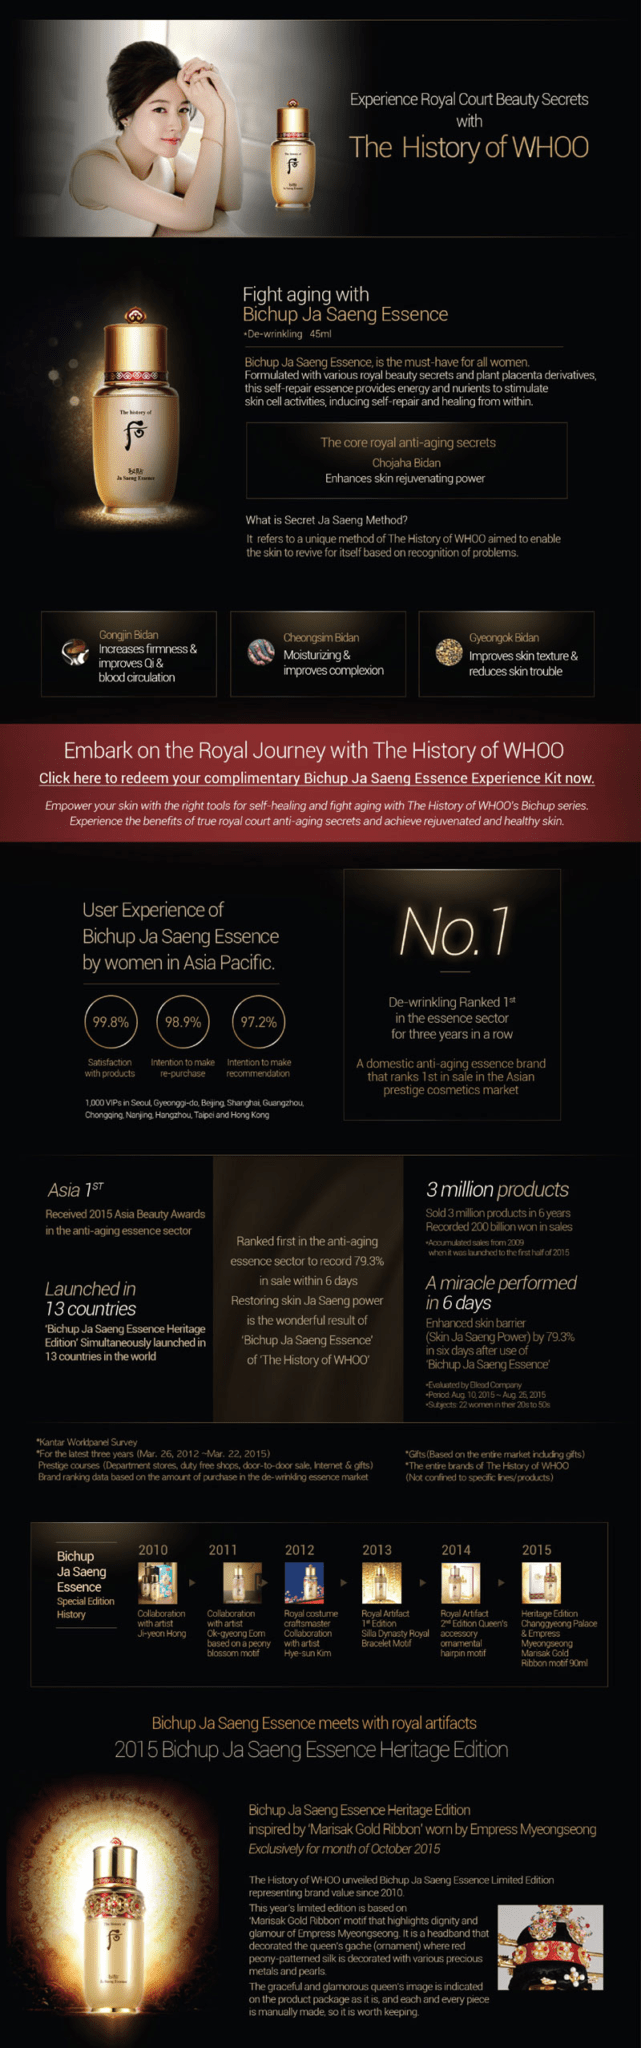 Redeem your complimentary Experience Kit from This History of WHOO now